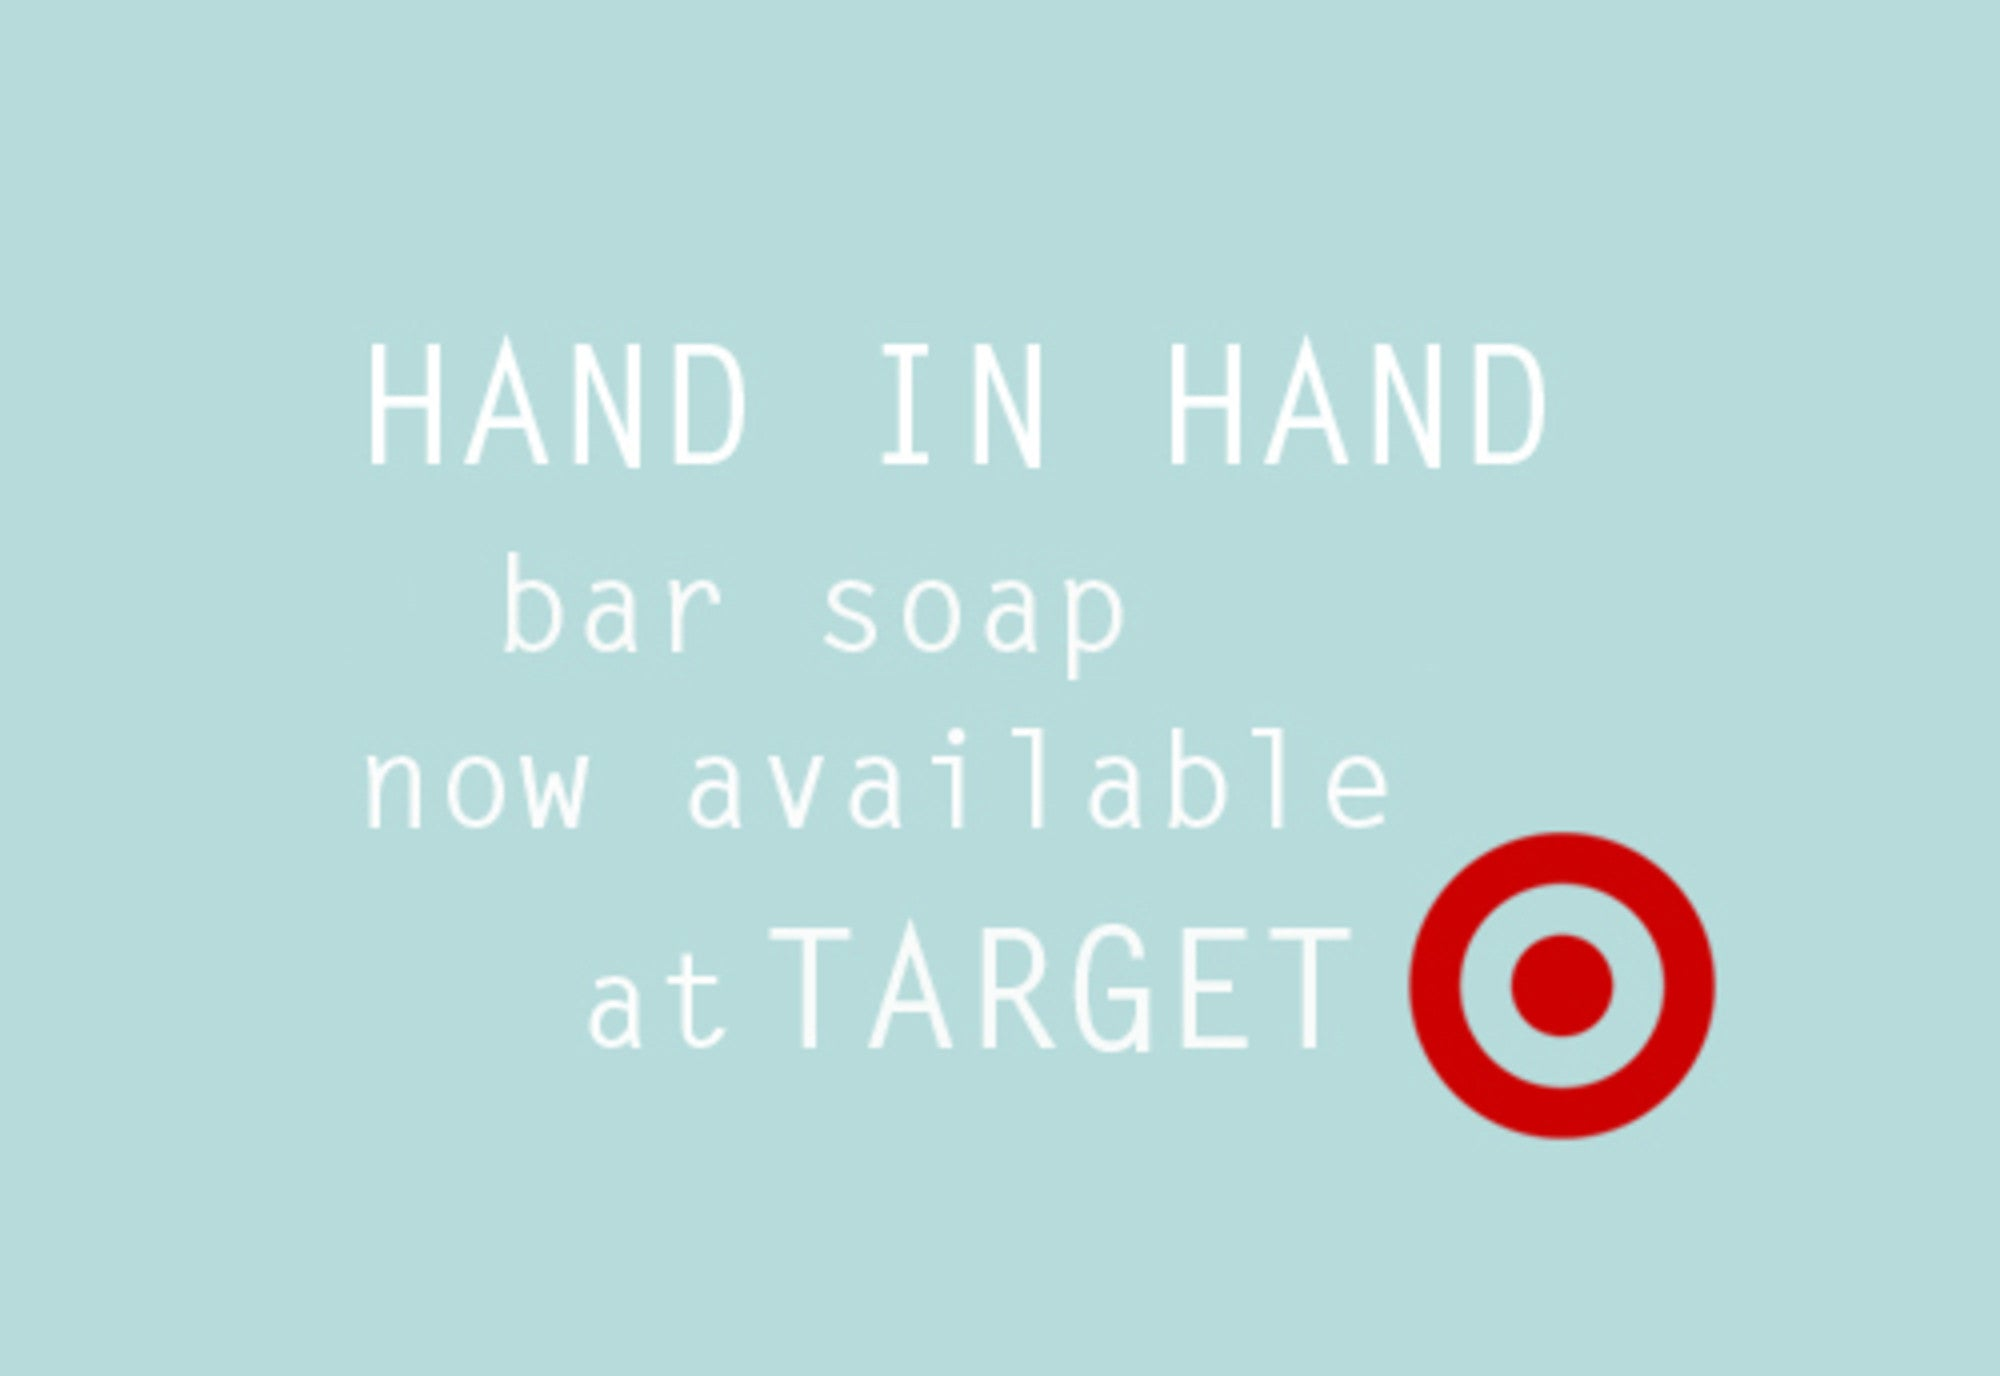 Hand in Hand in Target